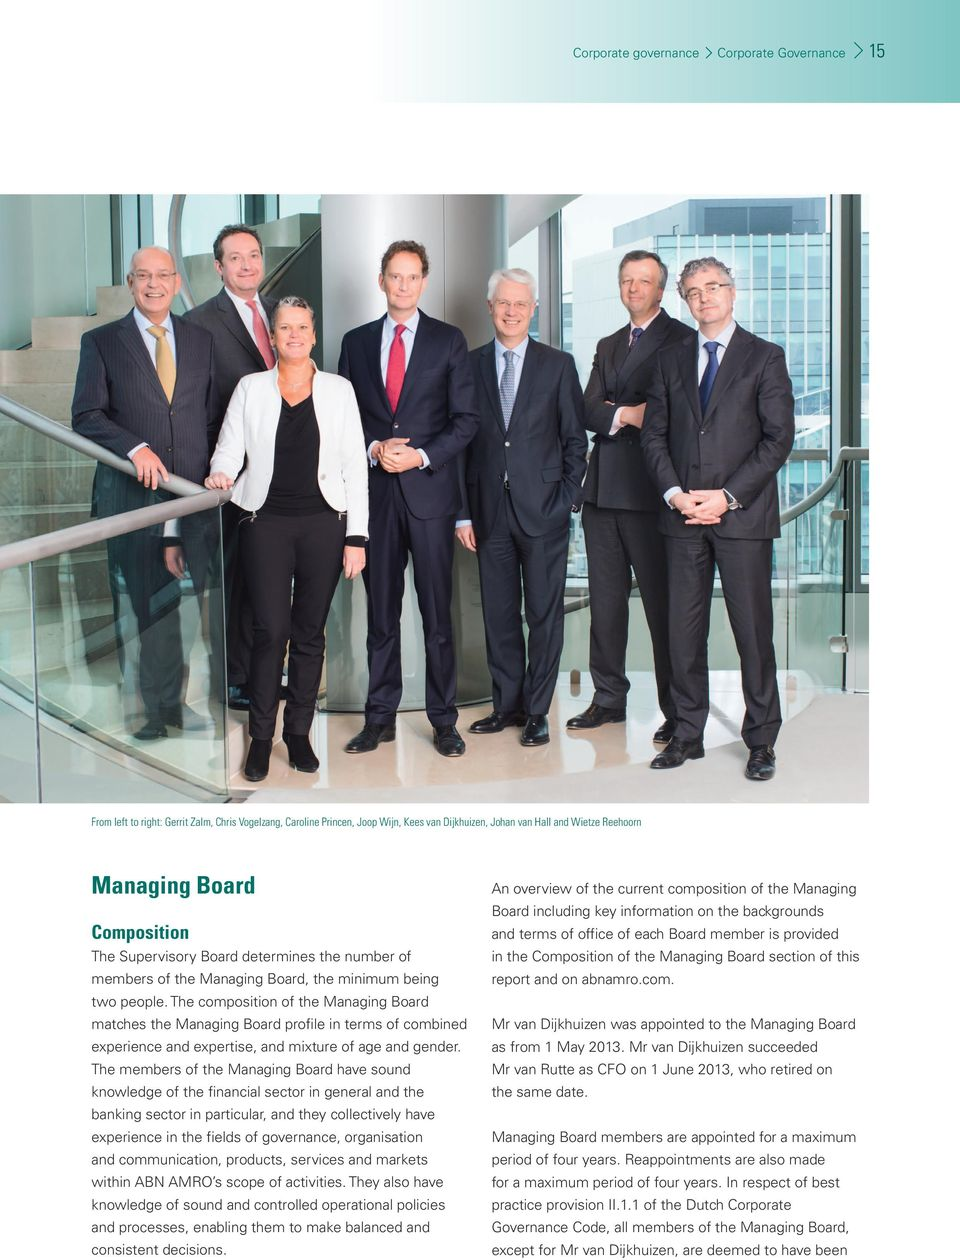 The composition of the Managing Board matches the Managing Board profile in terms of combined experience and expertise, and mixture of age and gender.